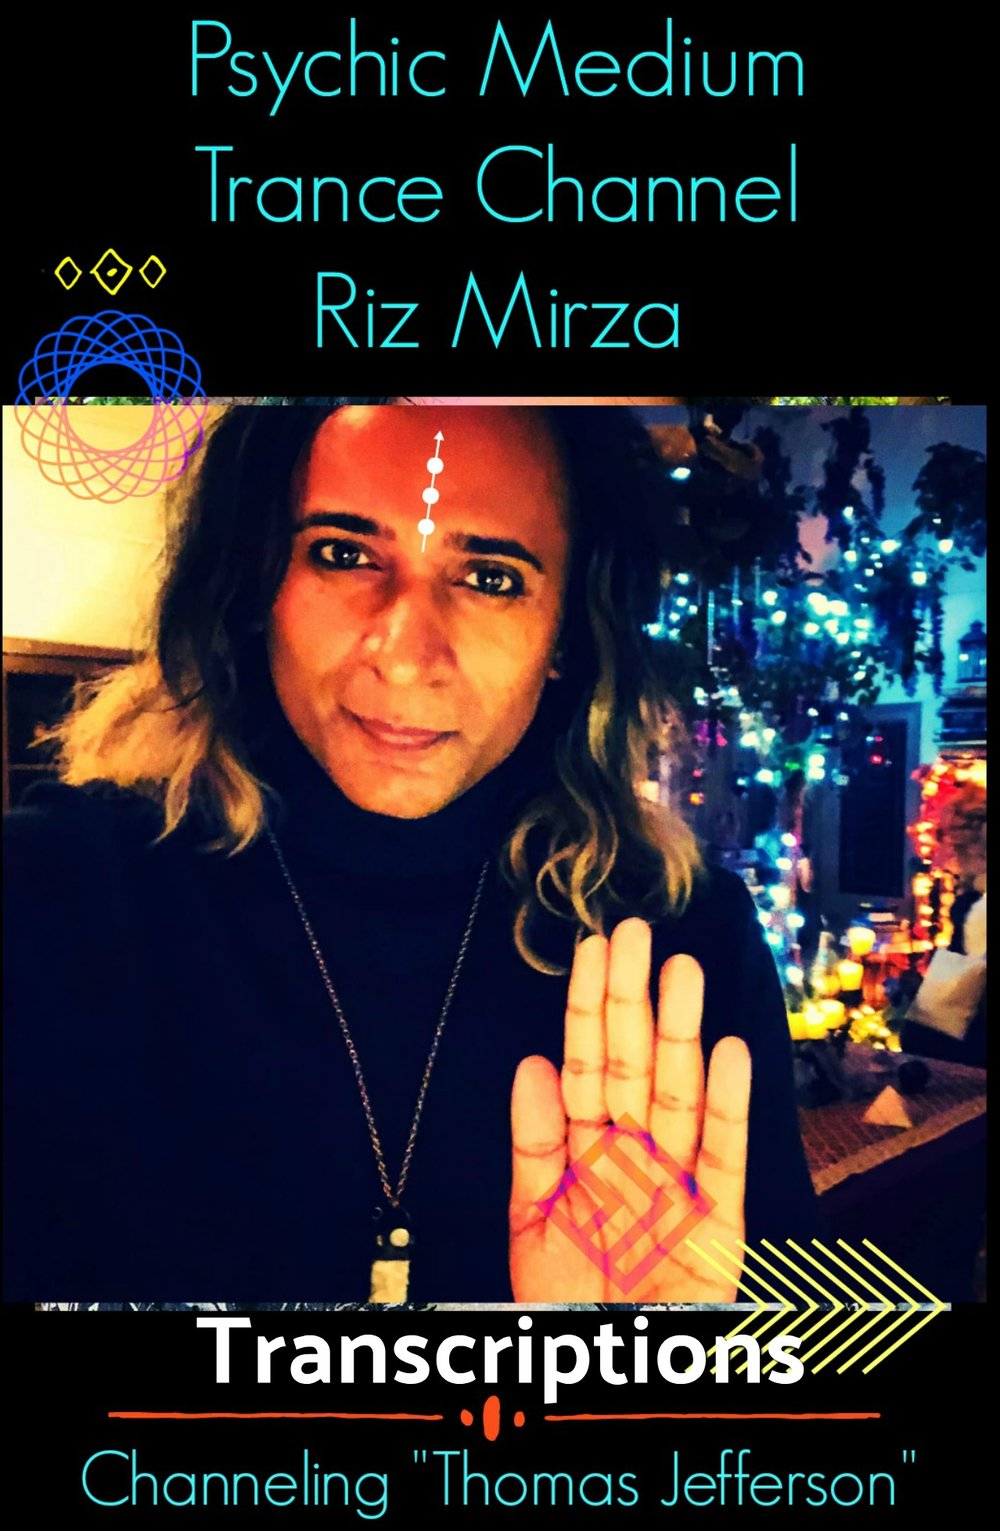 riz cropped website 3.jpg